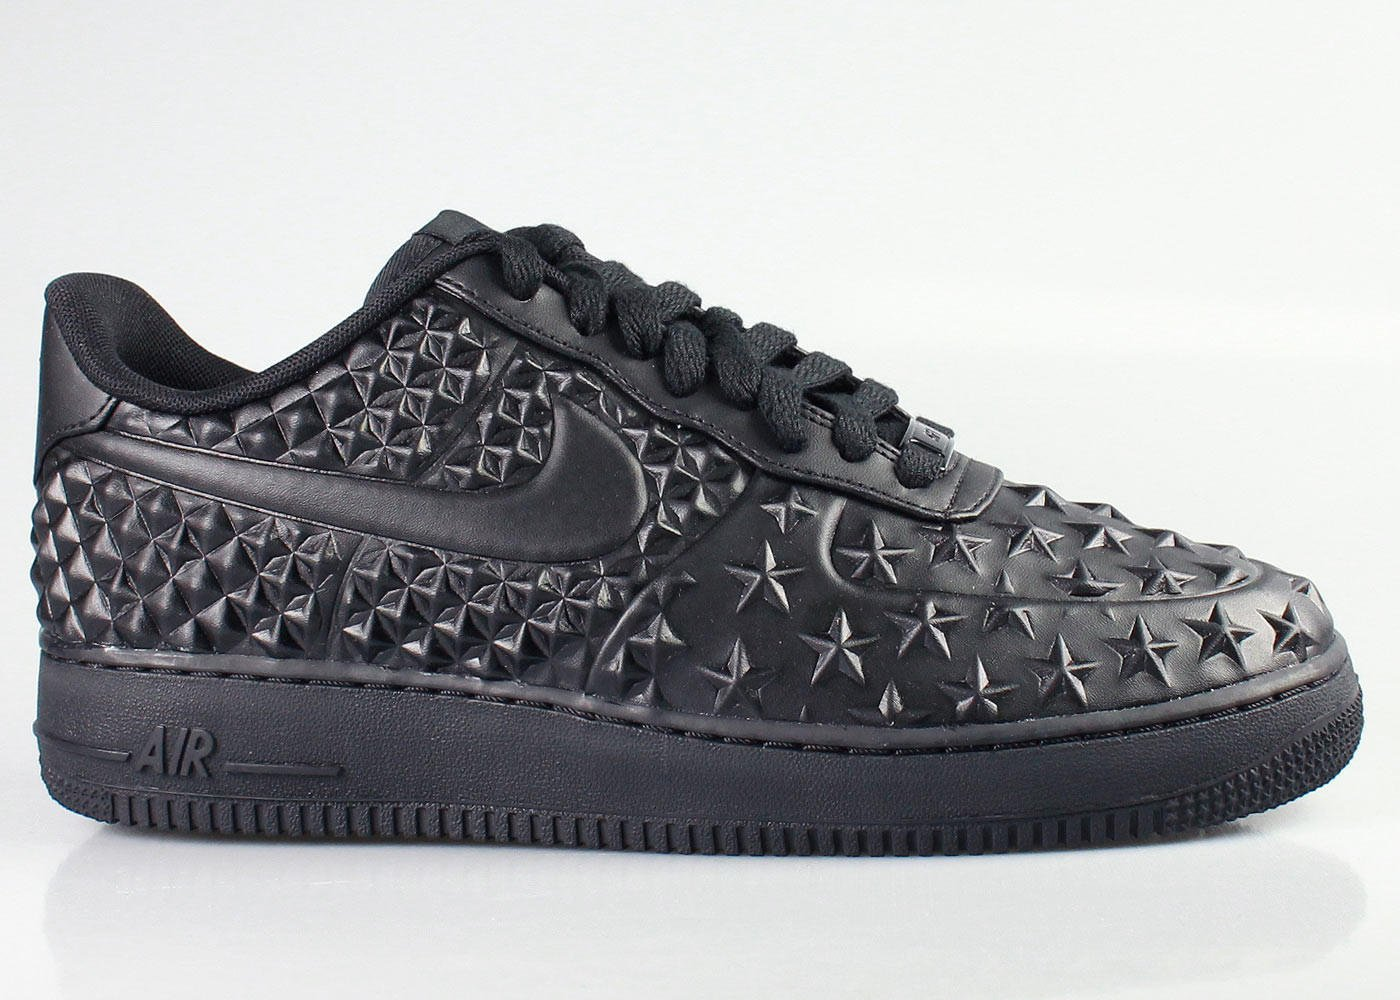 Nike Men s Air Force 1 Low LV8 VT from KickzStore dcdc666dc3b7